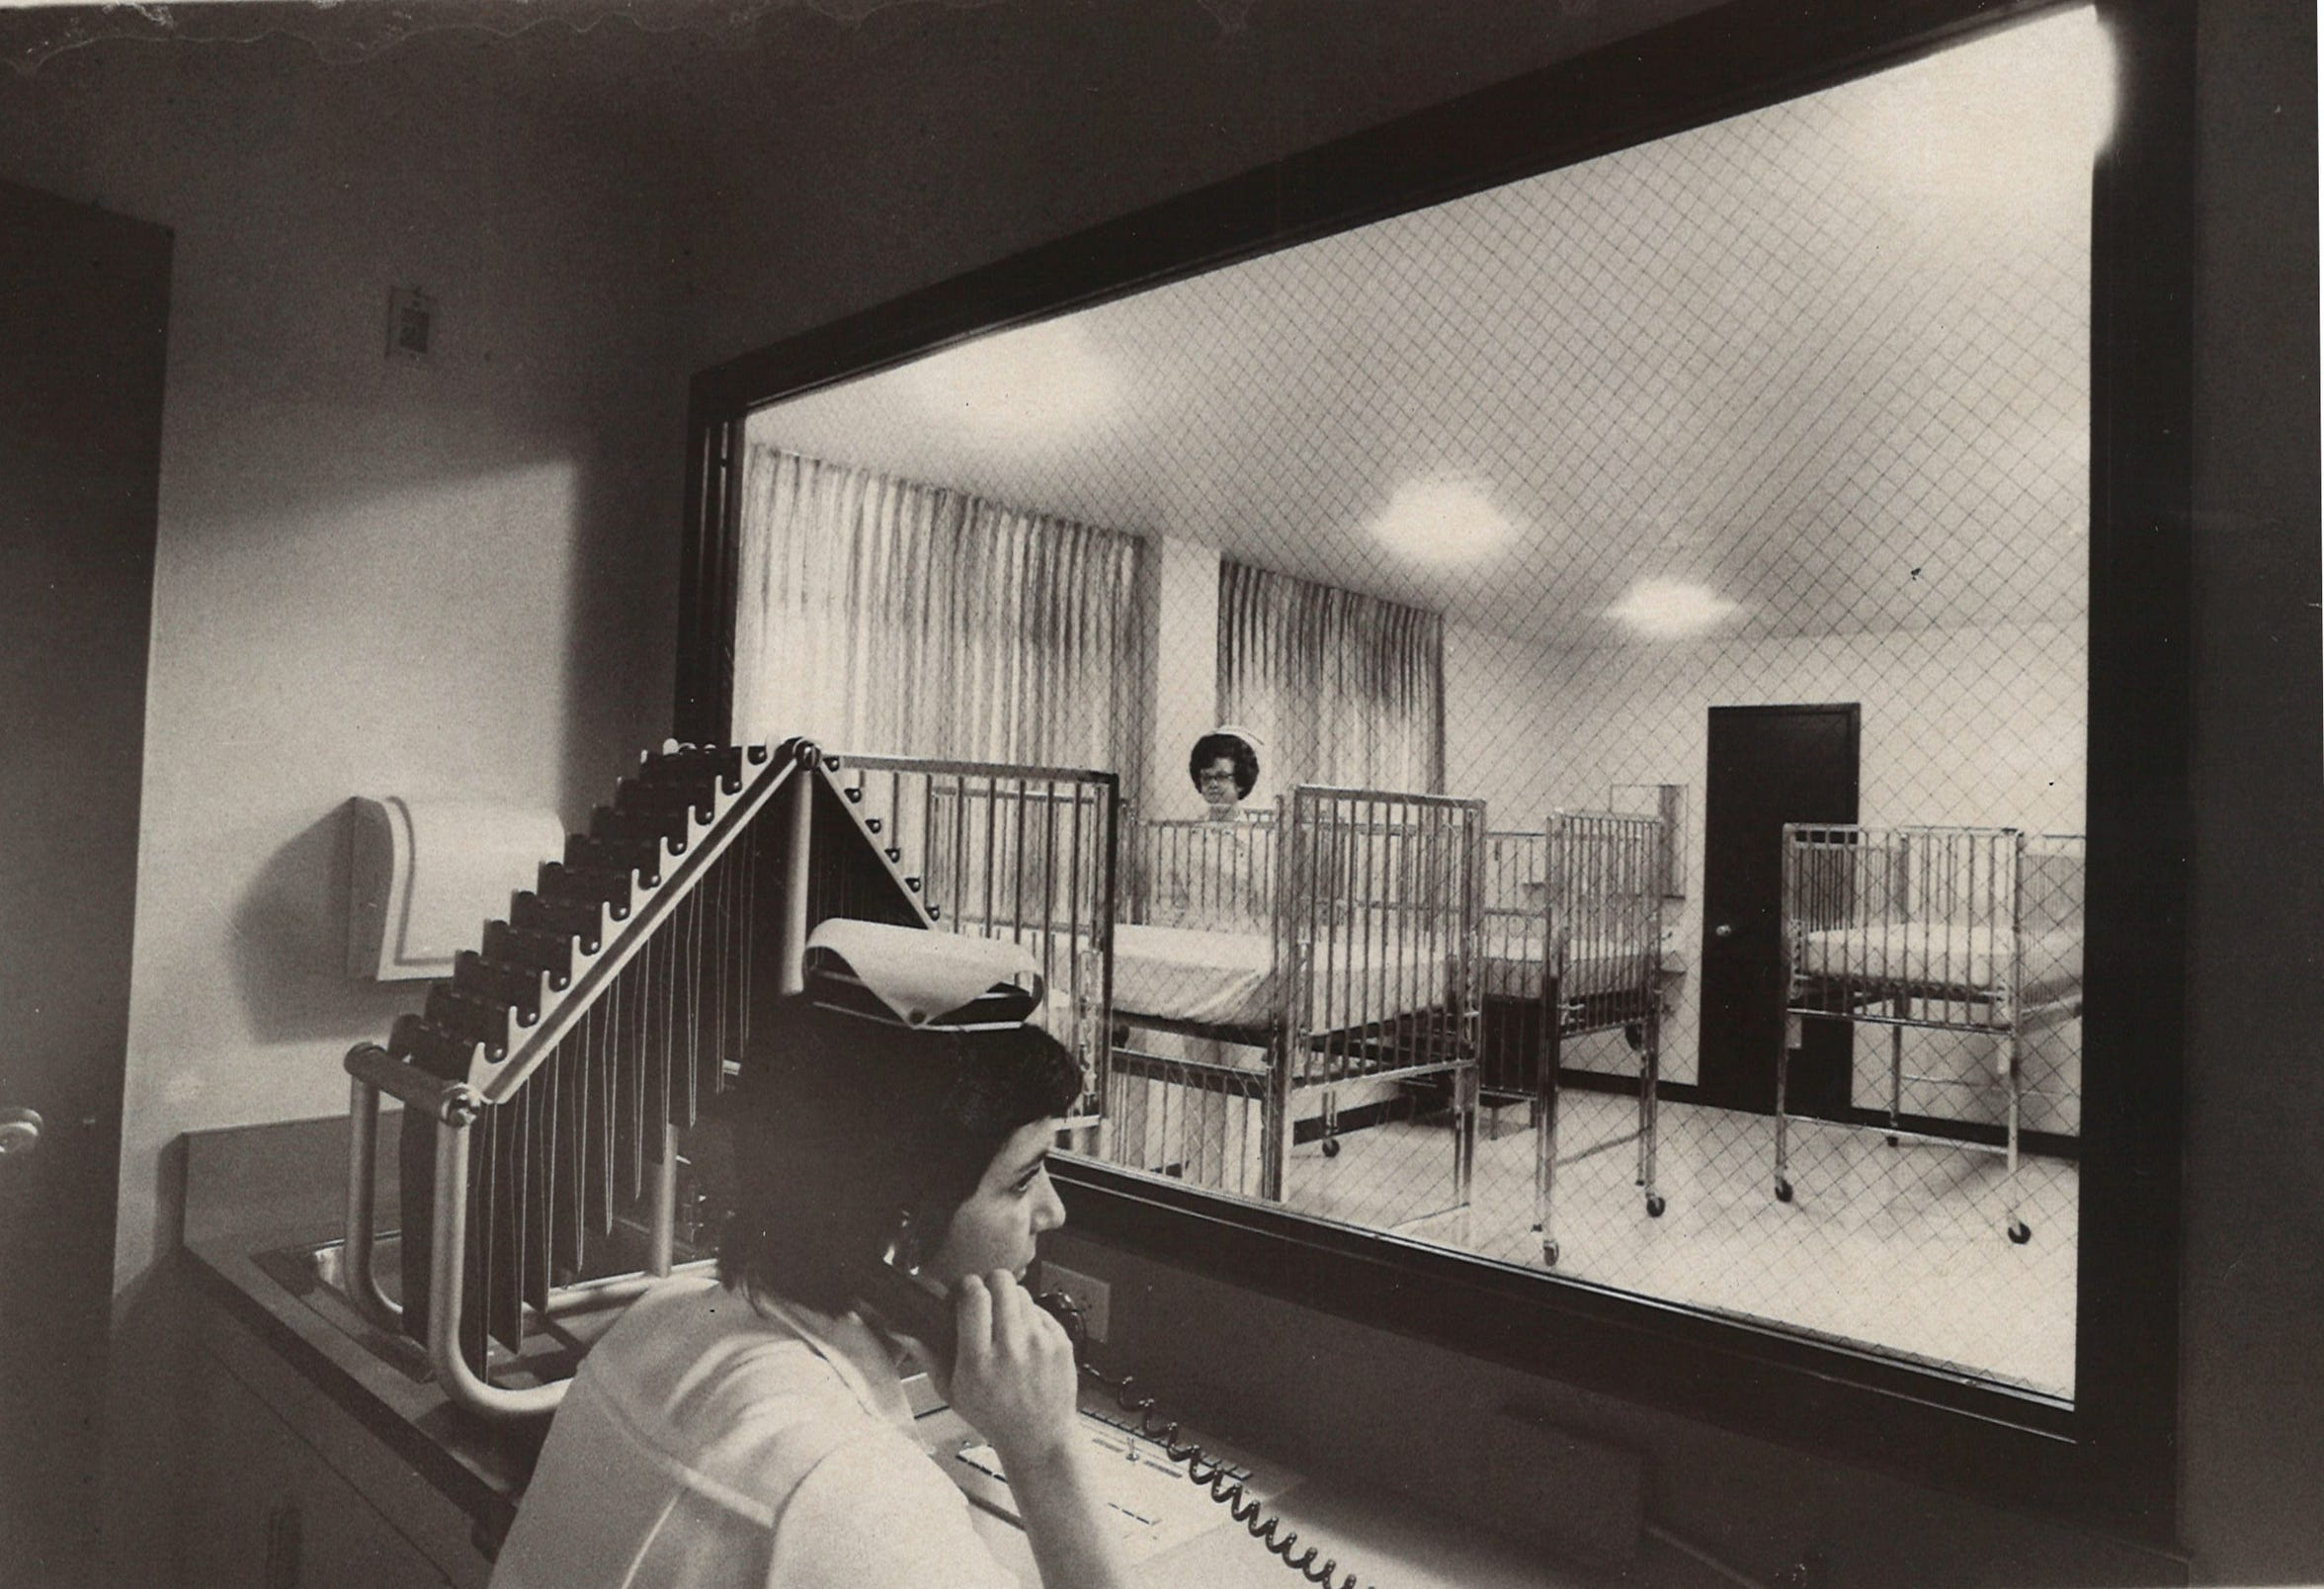 Nurse Irma Lopez speaks on the phone in the nurses station as Lela Shumate sets up cribs in the nursery of Corpus Christi Osteopathic Hospital in October 1975 on Tarlton Street in Corpus Christi. The hospital had just completed an addition, making it the third largest hospital in Corpus Christi at the time.